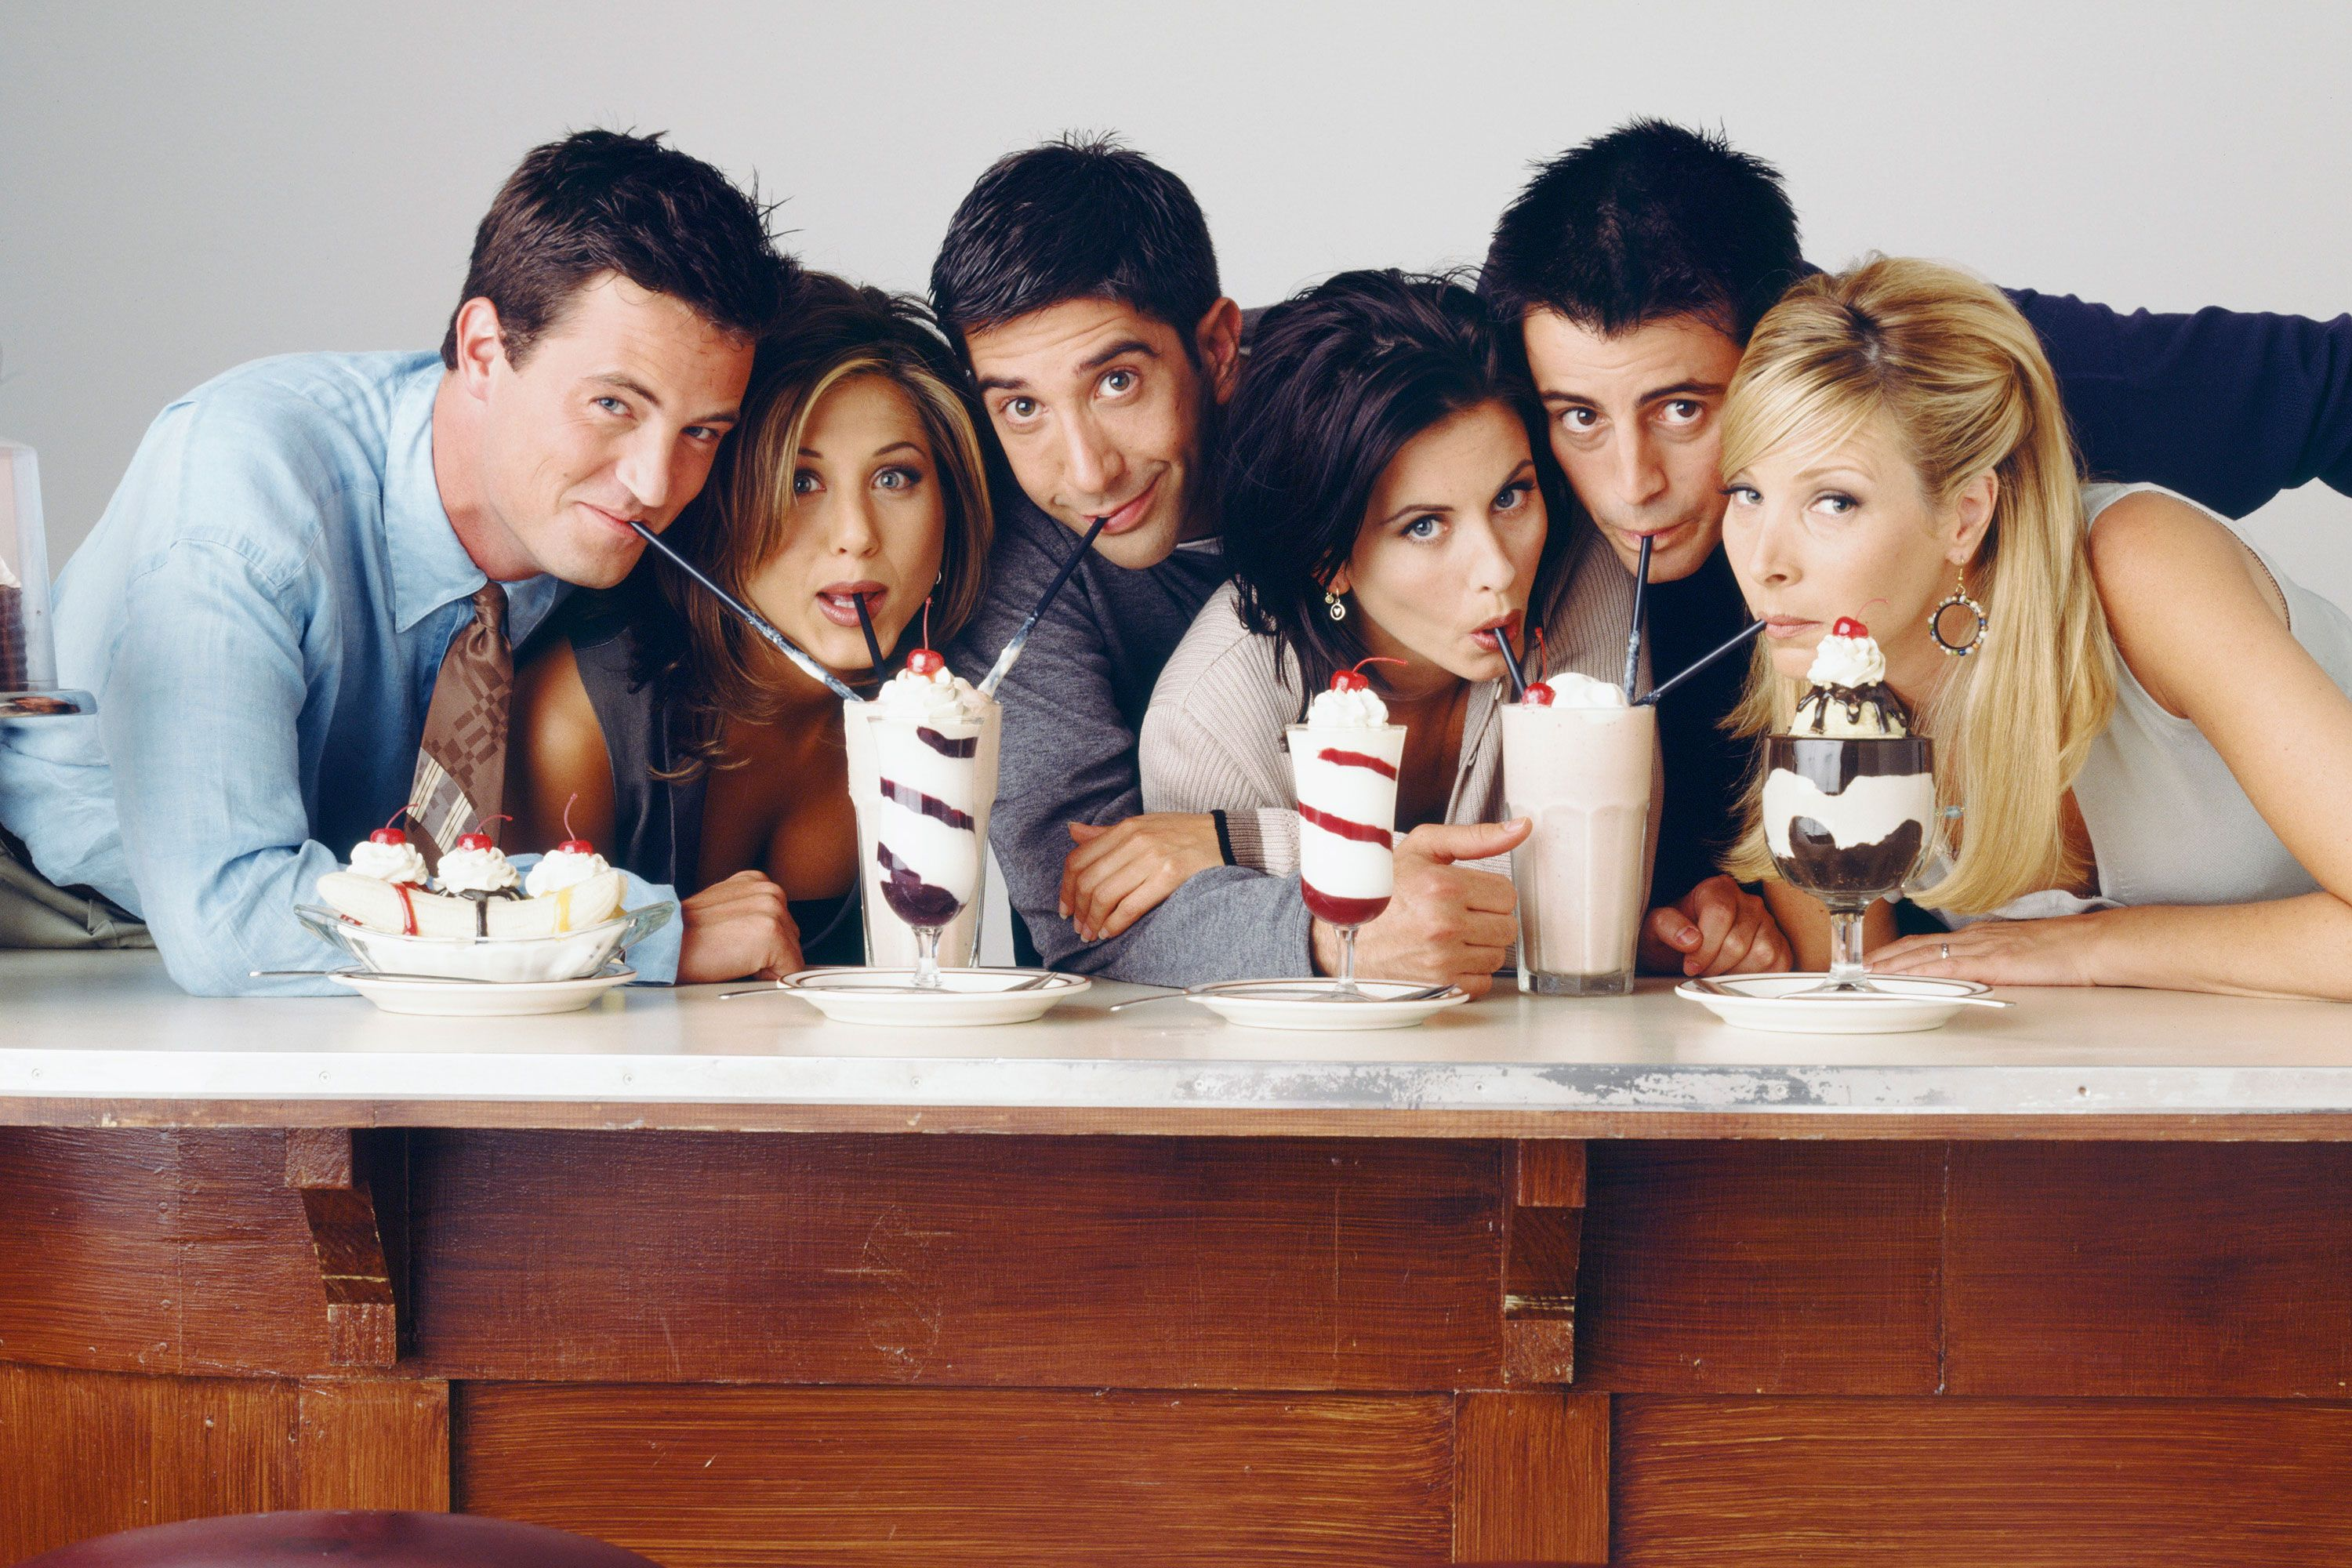 Friends reunion special: everything we know about the HBO show